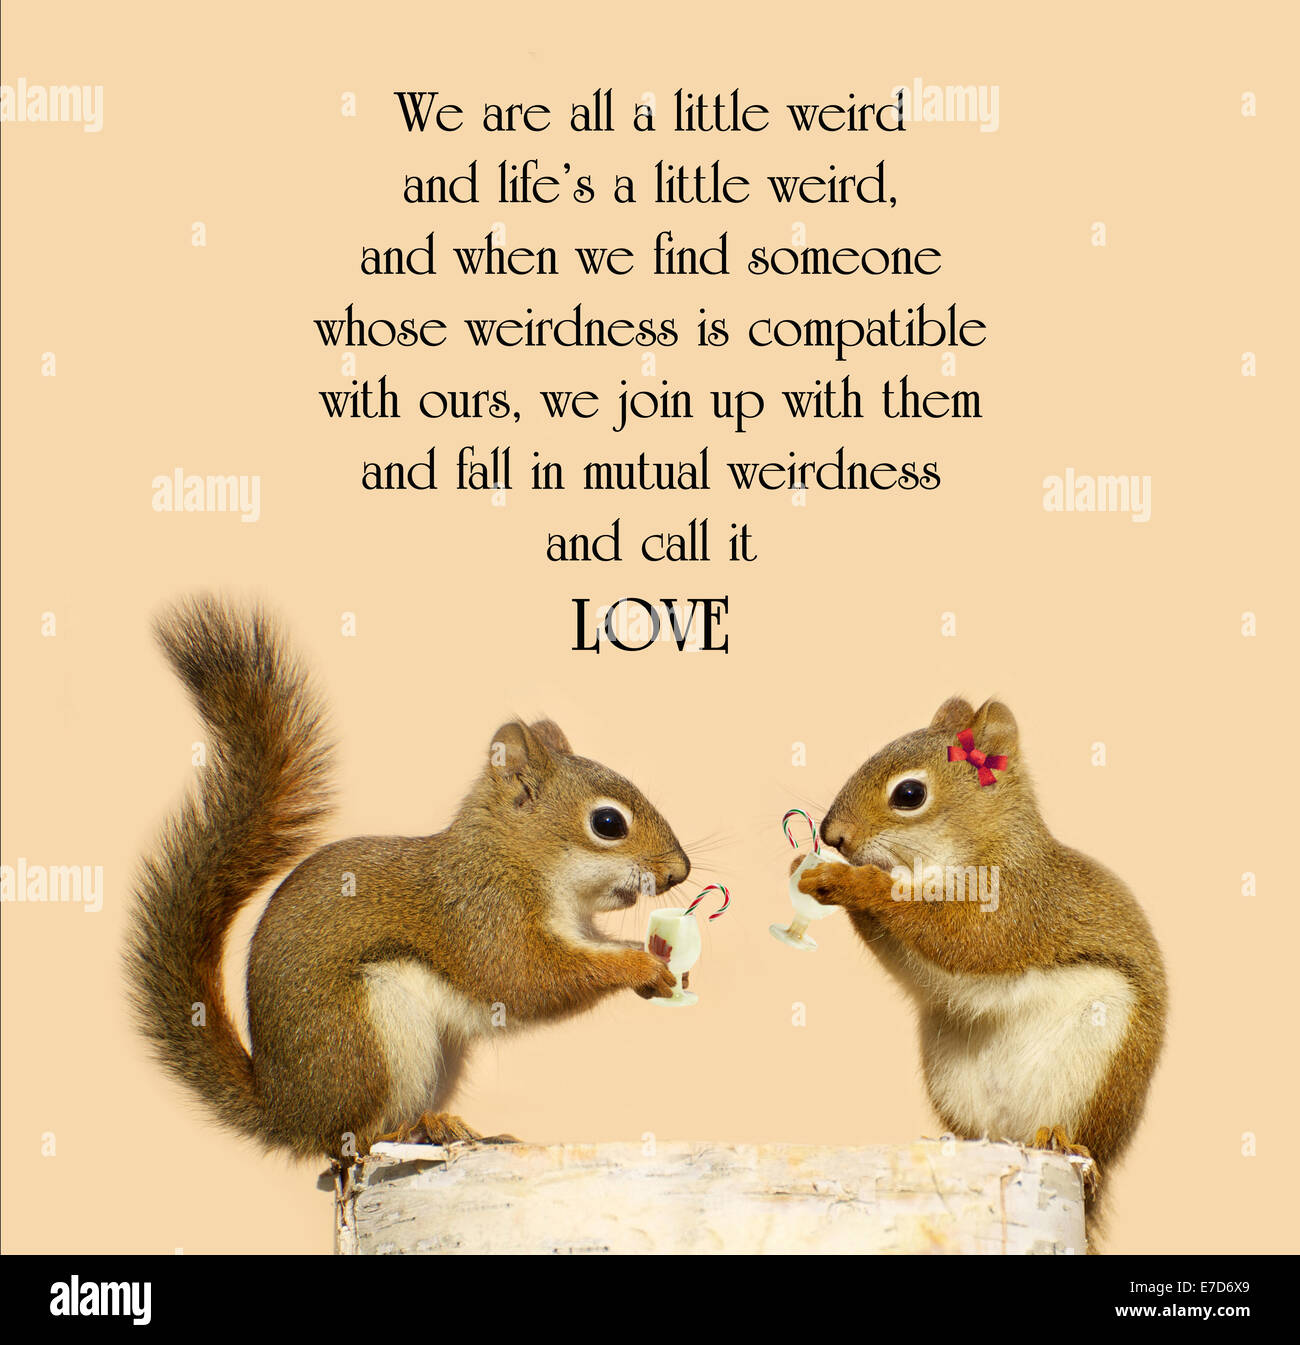 Dr Seuss Weird Love Quote Poster Dr Suess Stock Photos & Dr Suess Stock Images  Alamy